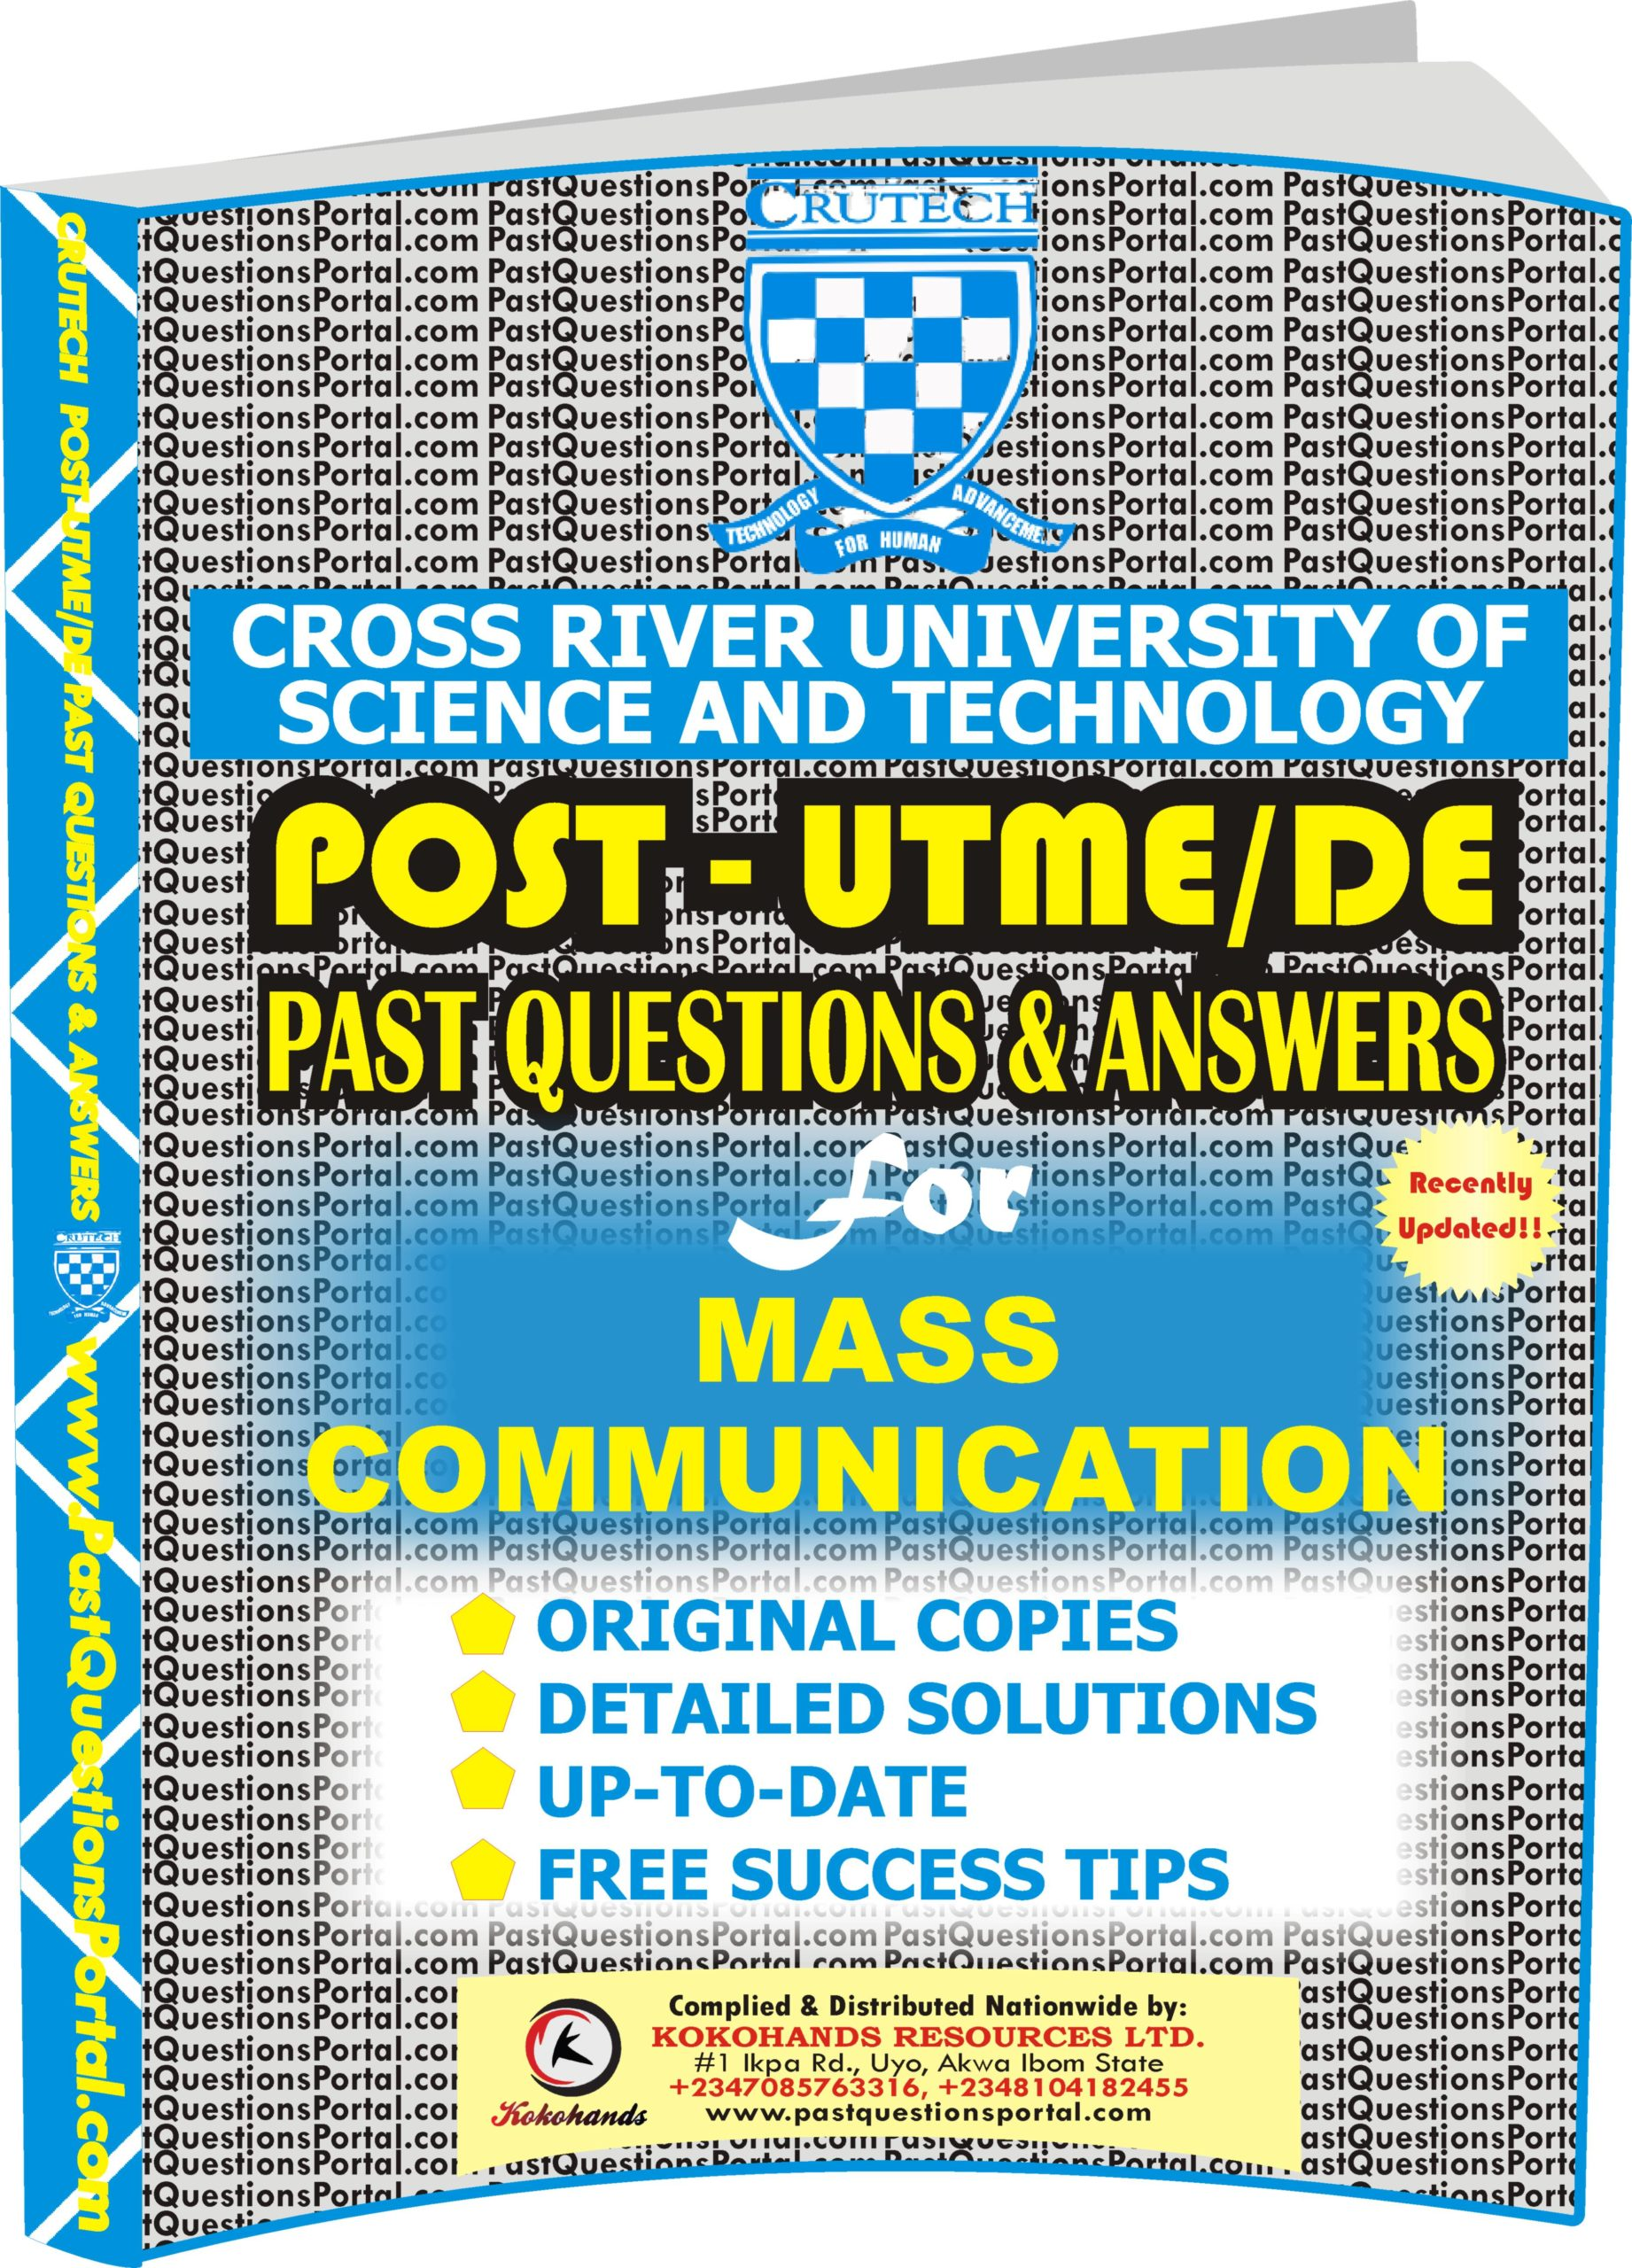 CRUTECH Post UTME Past Questions for MASS COMMUNICATION